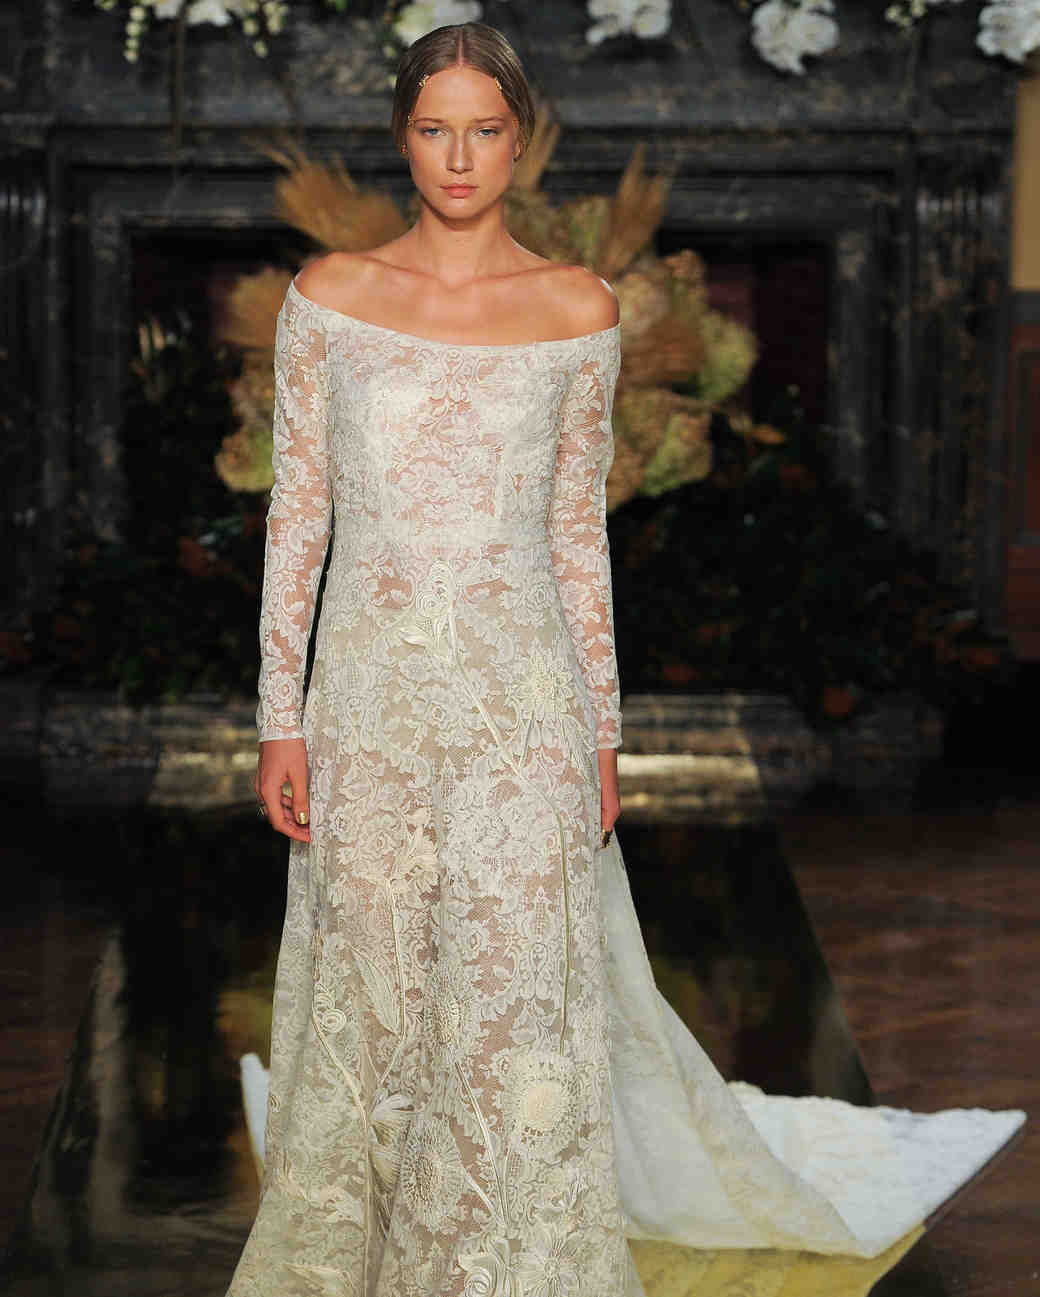 Long-Sleeve Wedding Dresses We Love - Martha Stewart Weddings